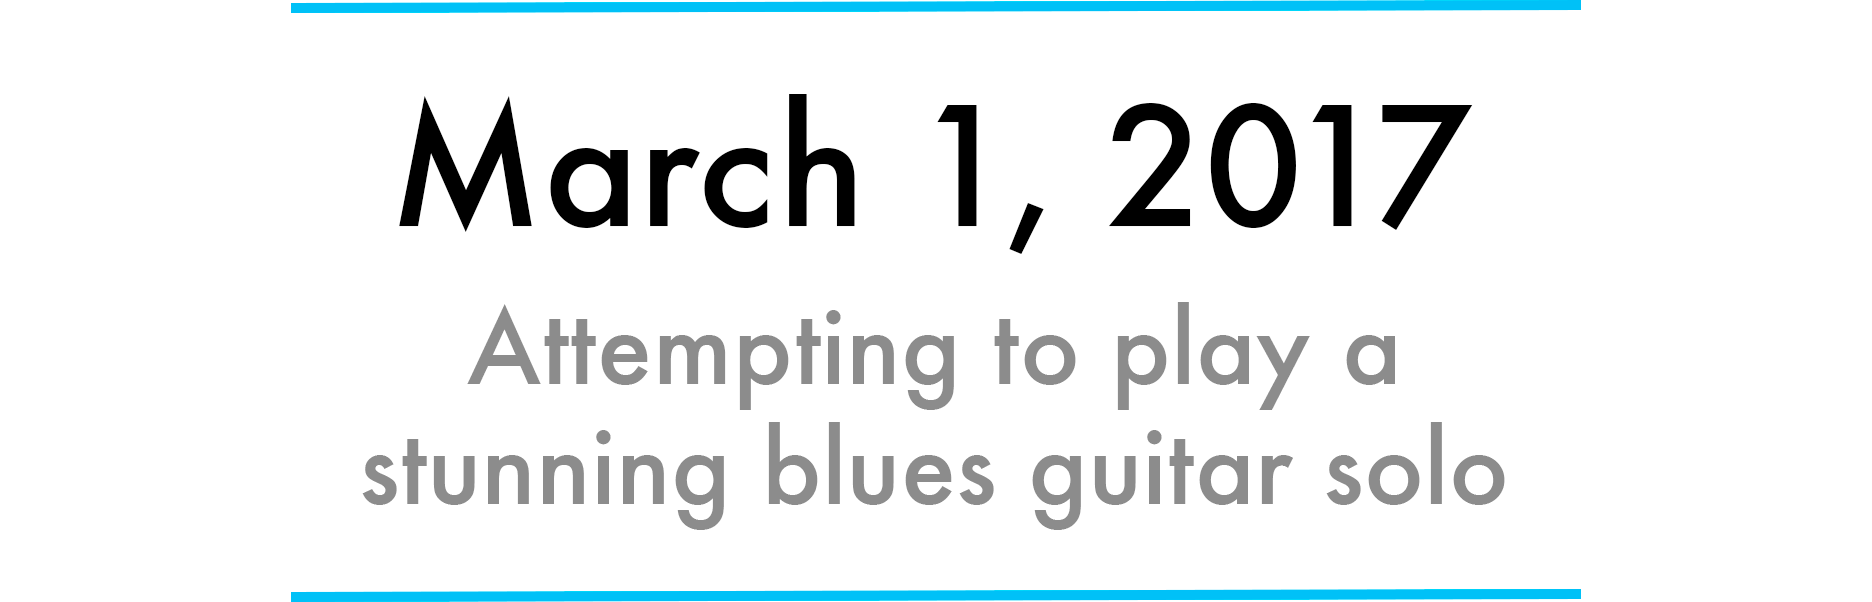 9eee1967e80f How to become a master of improvisational blues guitar in one month